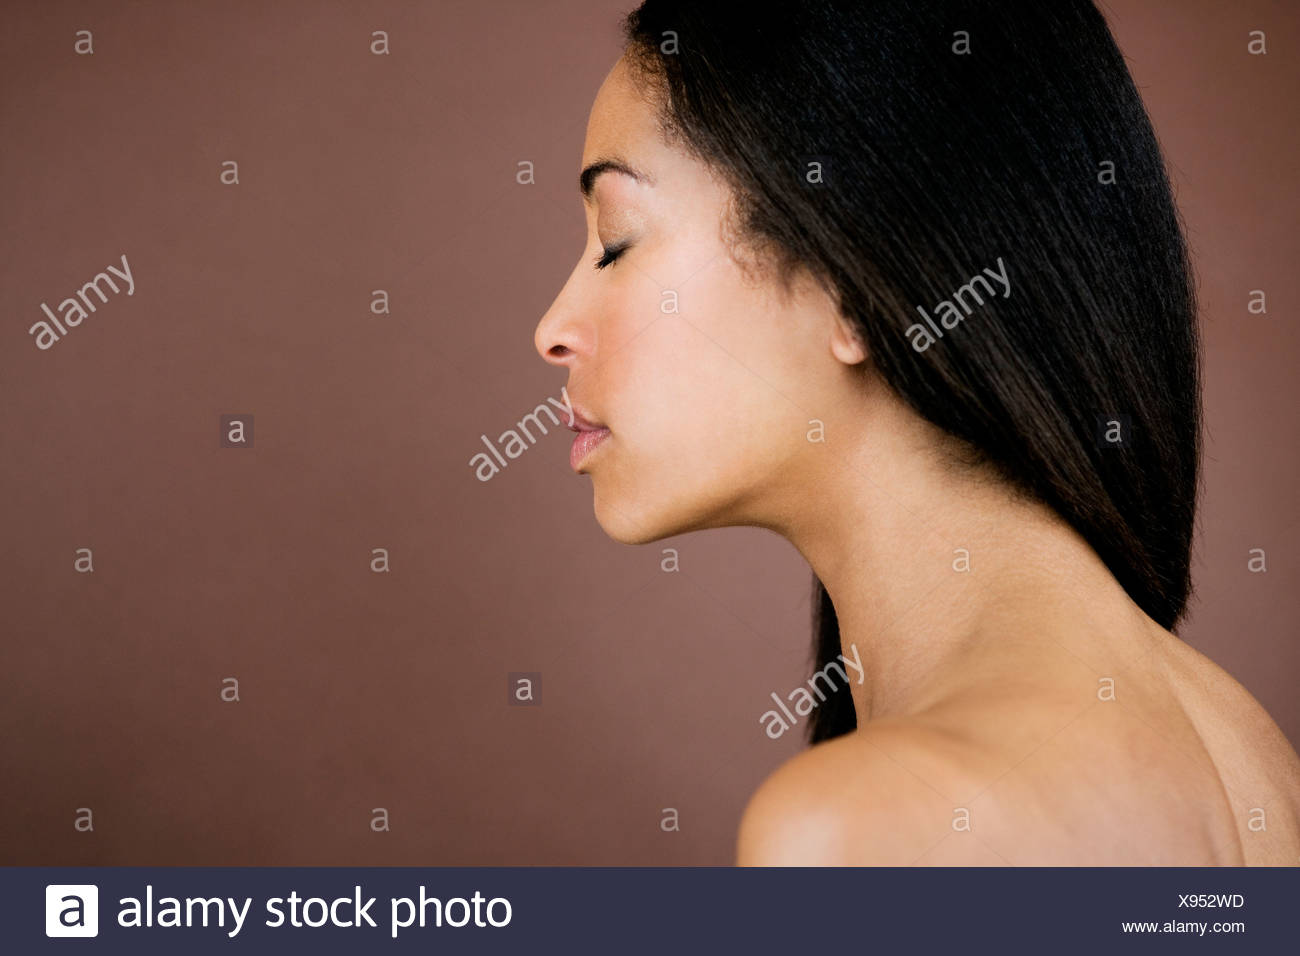 A portrait of a young black woman, side view - Stock Image